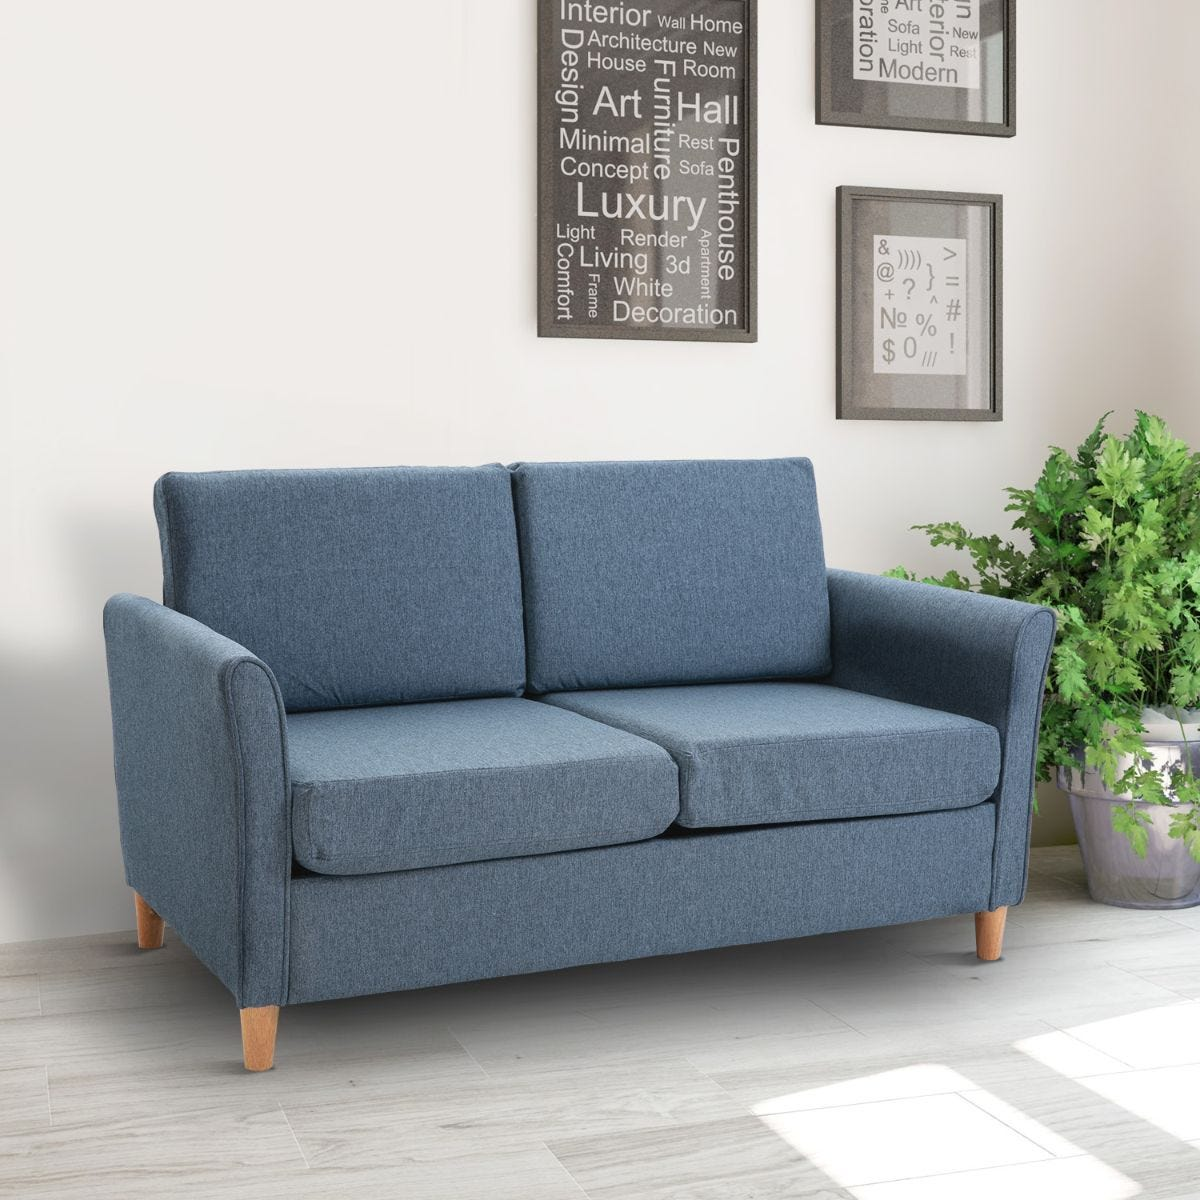 Compact Two Seater Sofa With Armrests Linen Style Upholstery Blue